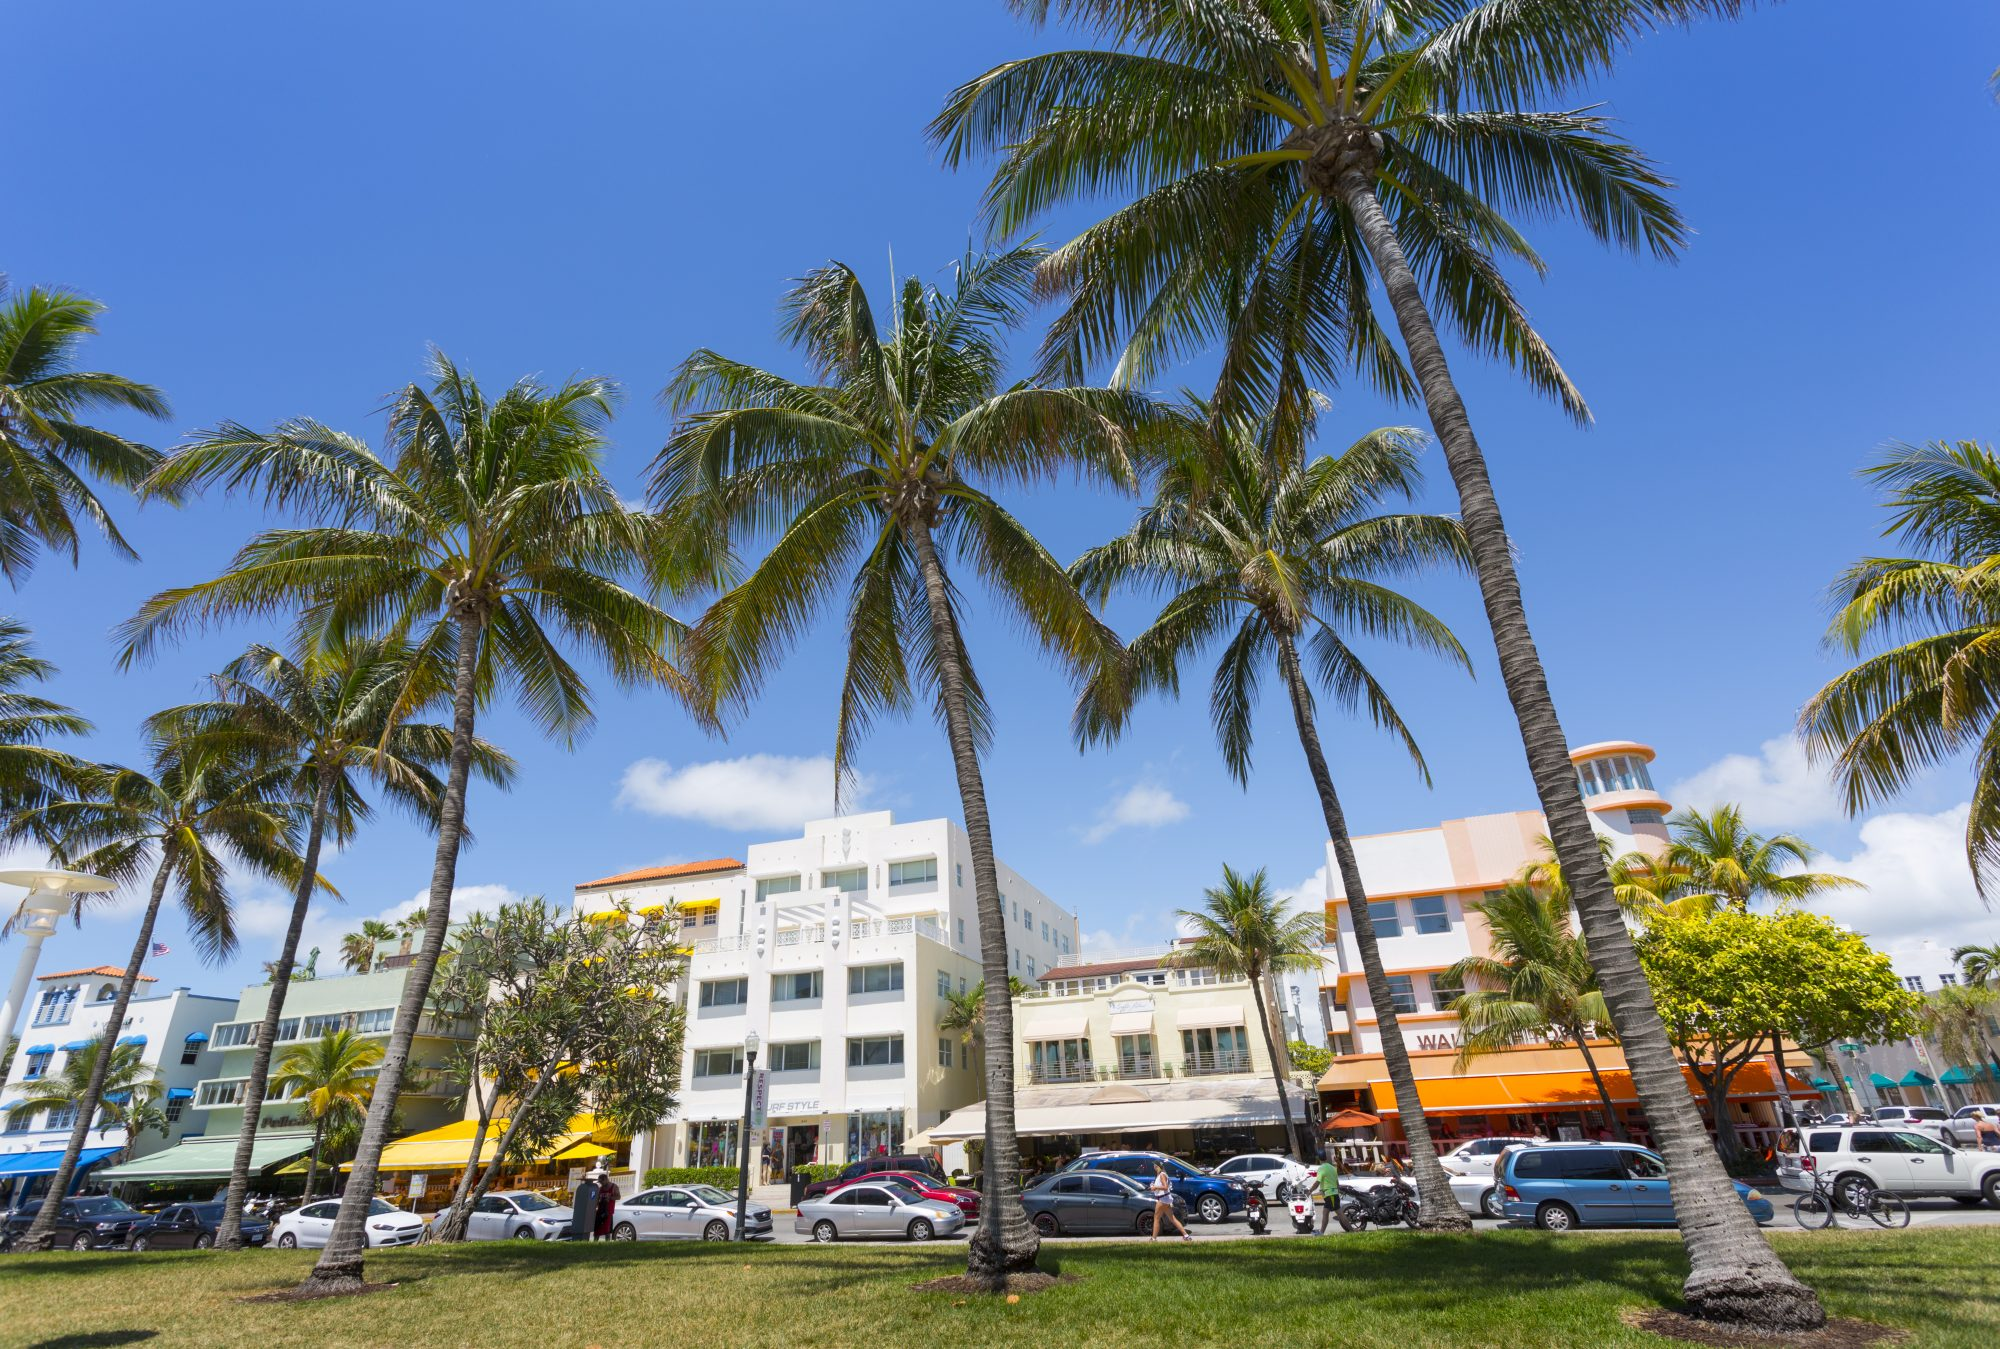 Ocean Drive and Art Deco architecture, Miami Beach, Miami, Florida, United States of America, North America